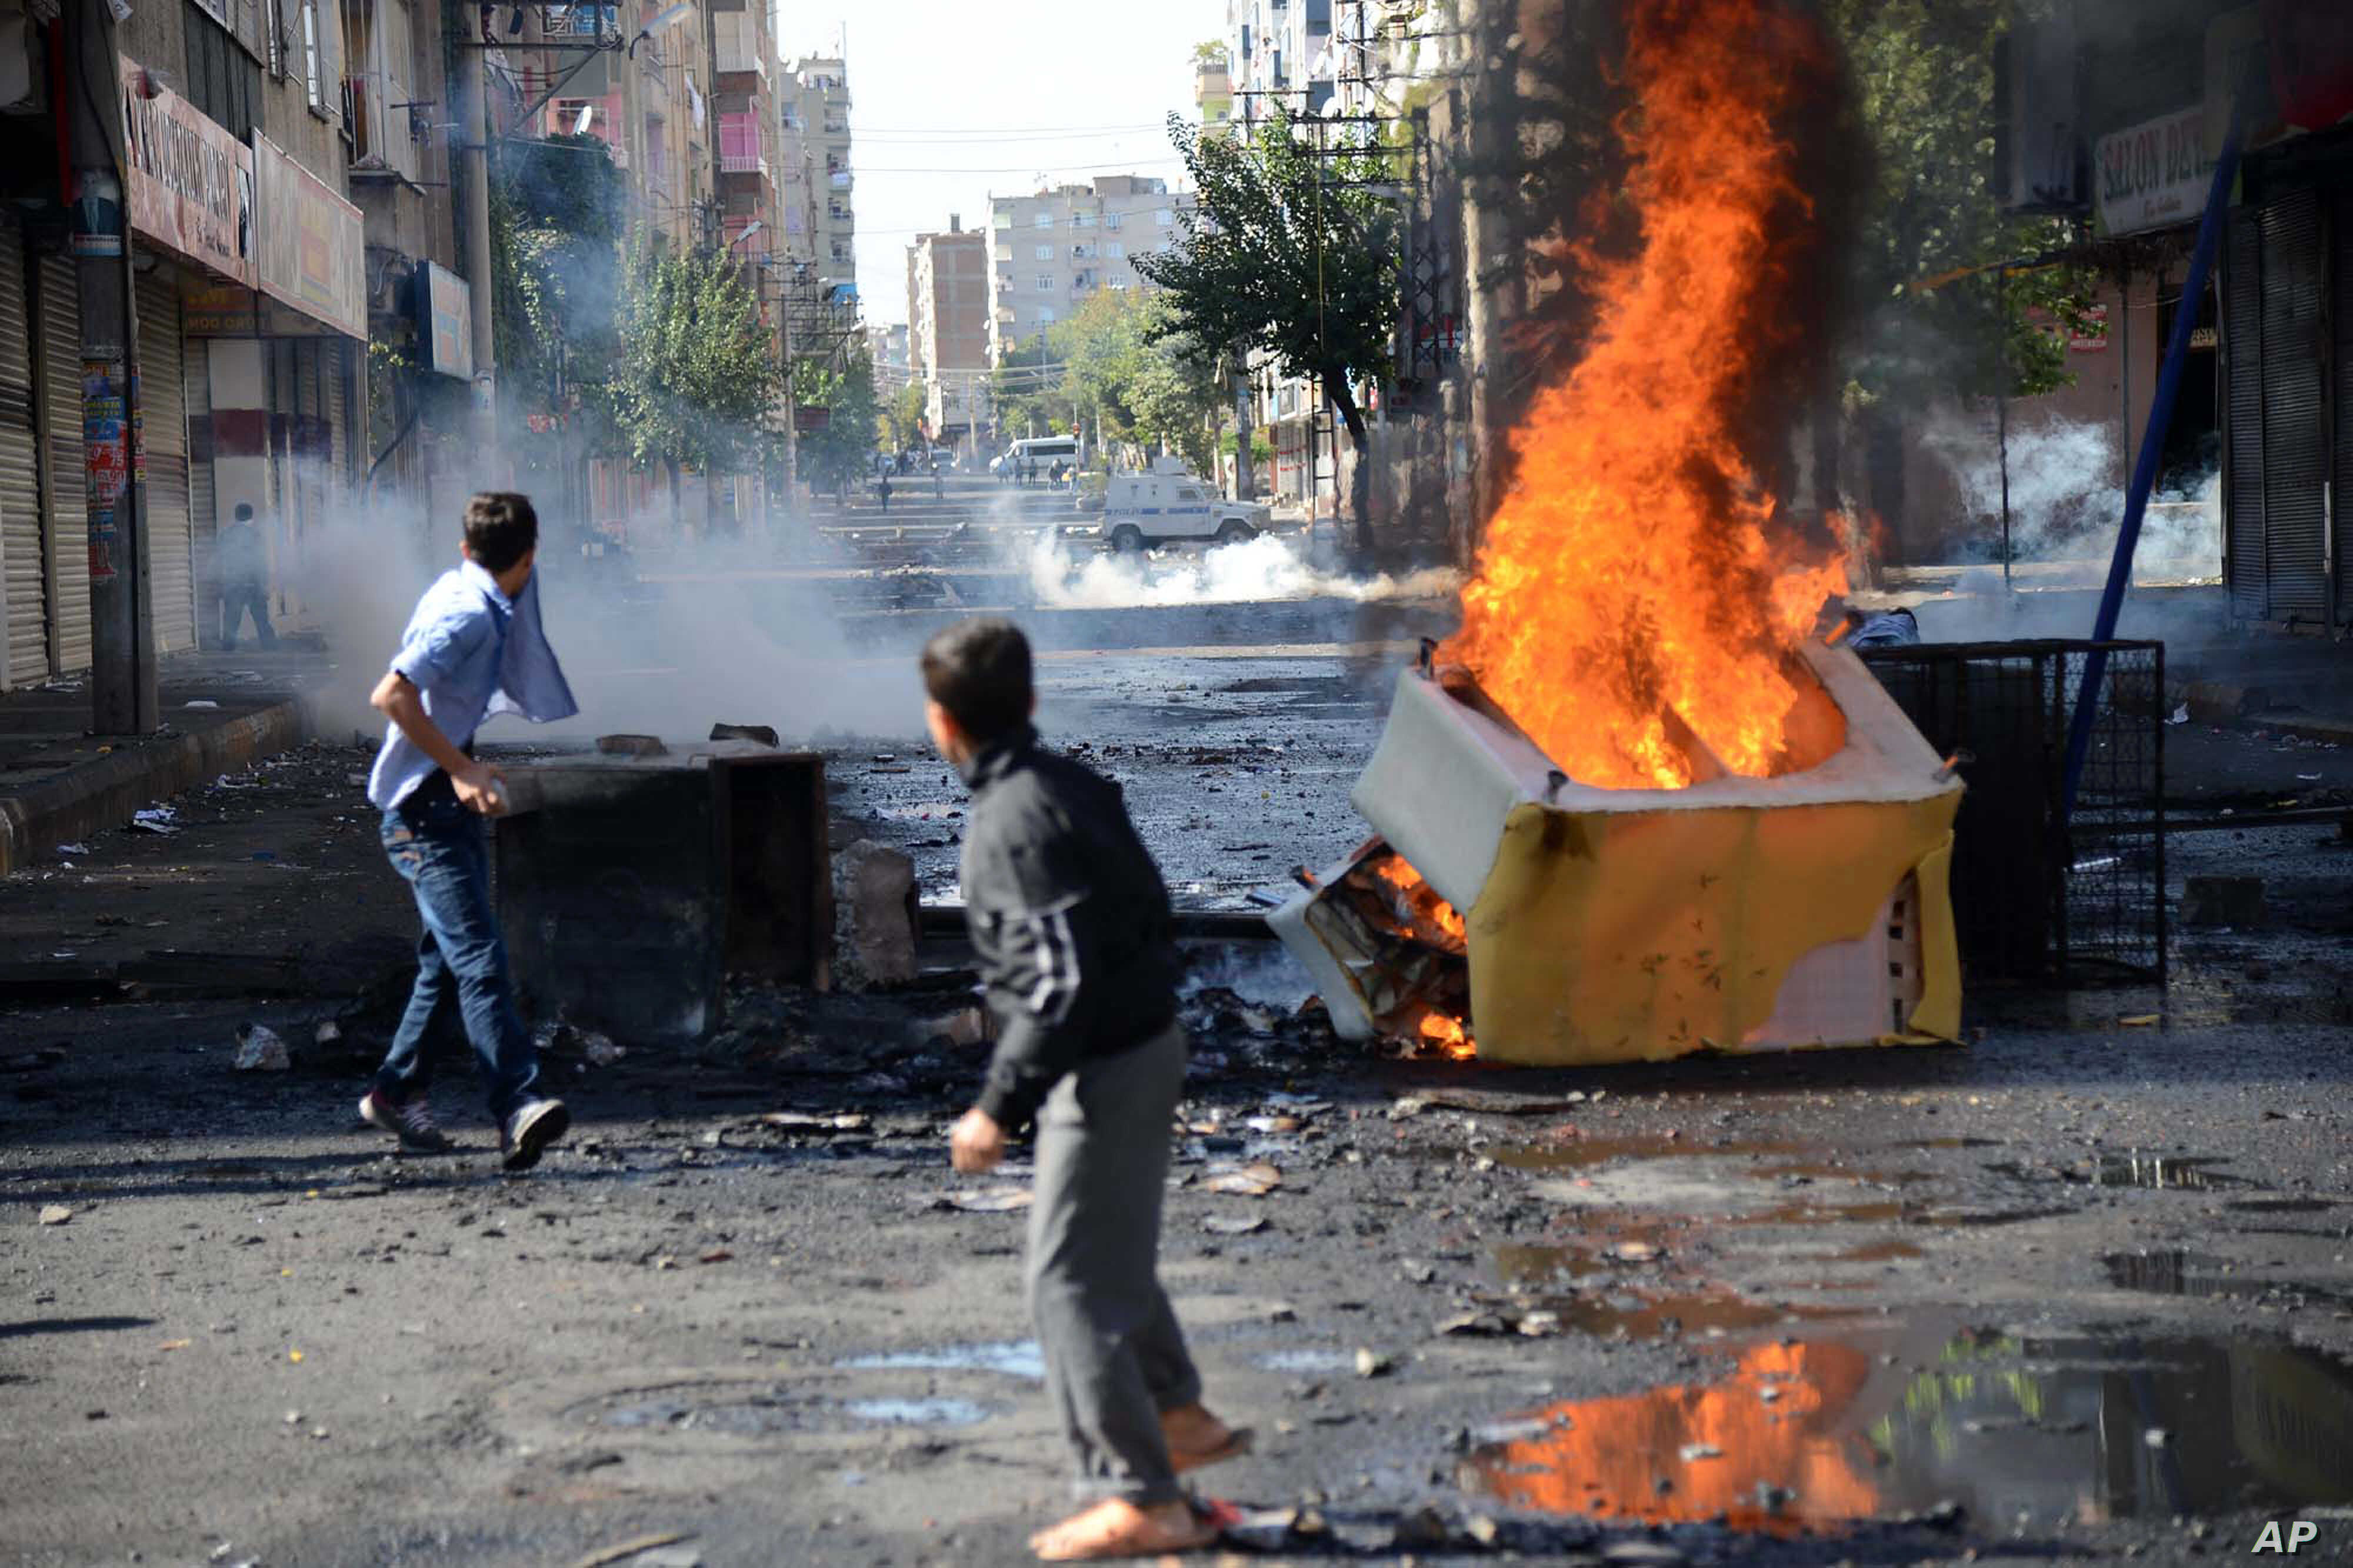 FILE - With tanks in the background, youths set fire to barricades in Diyarbakir, Turkey, hours after Kurds protesting the Islamic State advance on Kobani, Syria, had clashed with police, Oct. 8, 2014.